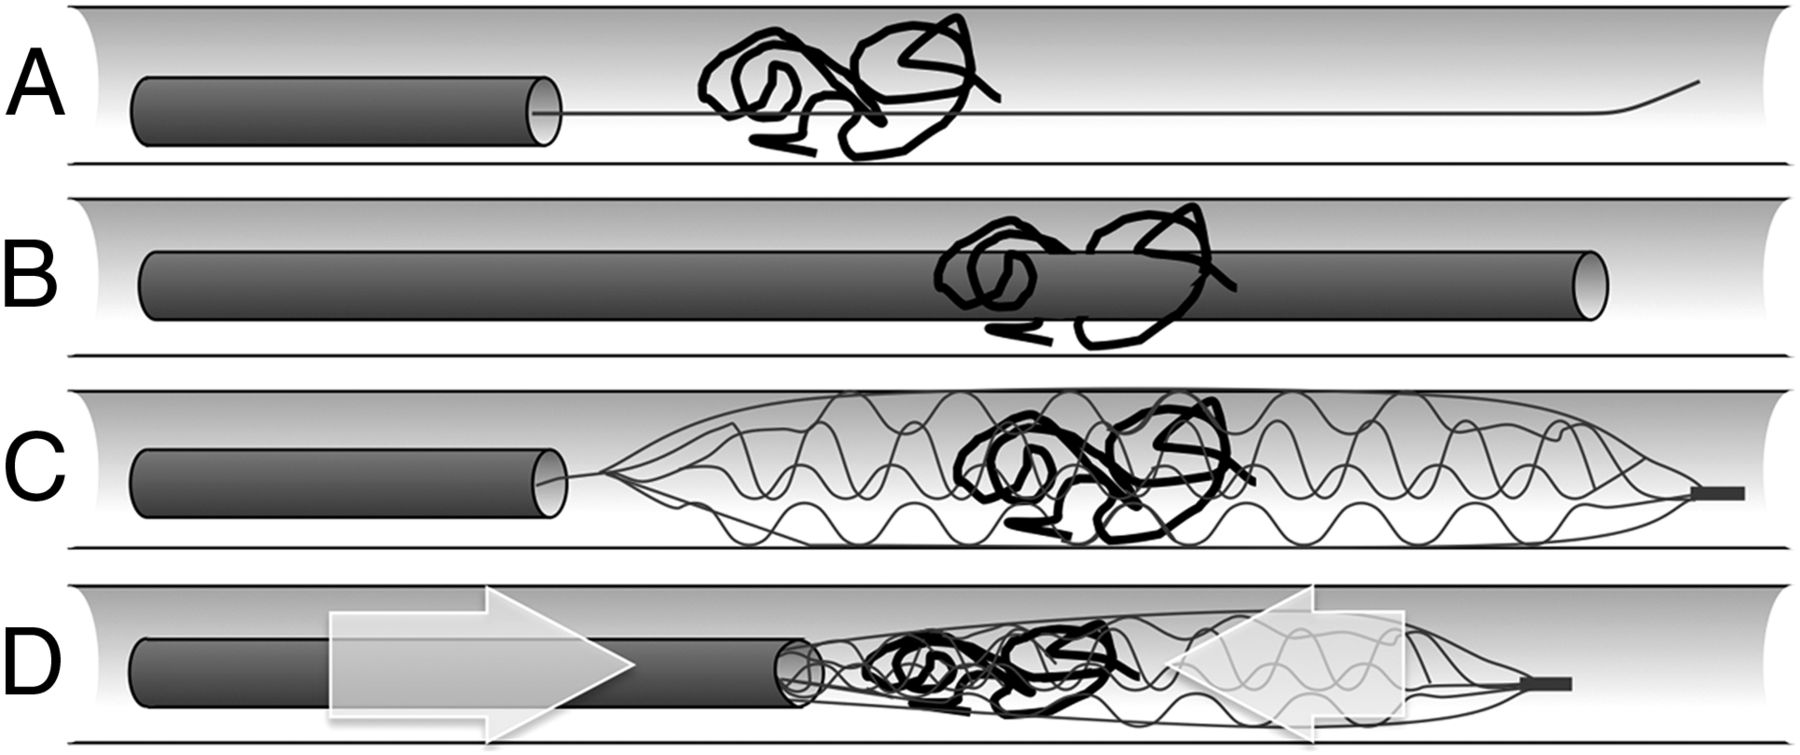 Retrieval of Migrated Coils with Stent Retrievers: An Animal